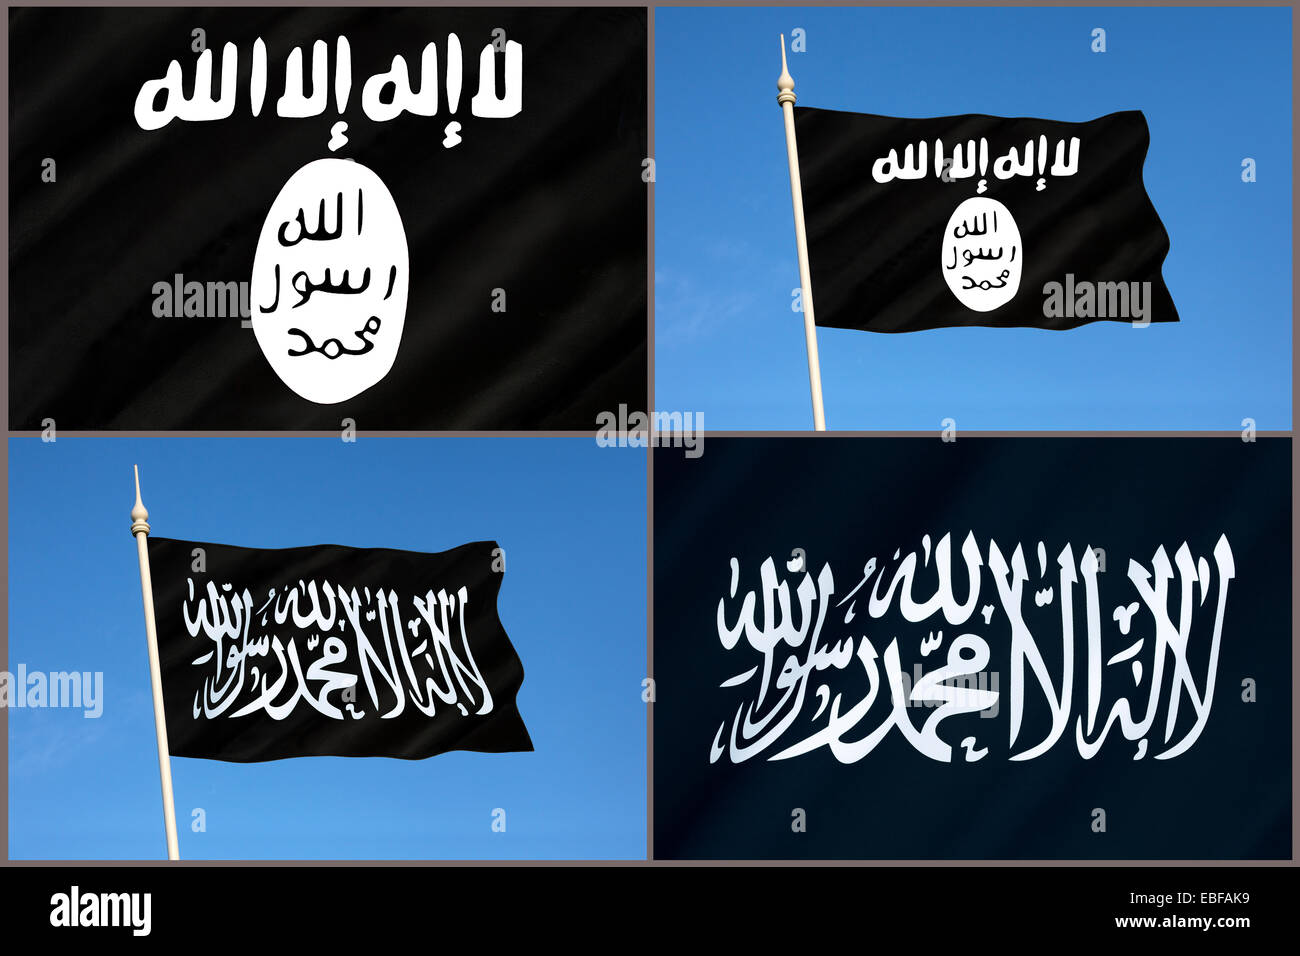 Flags of Al-Qaeda and Islamic State (ISIS or ISIL) Stock Photo